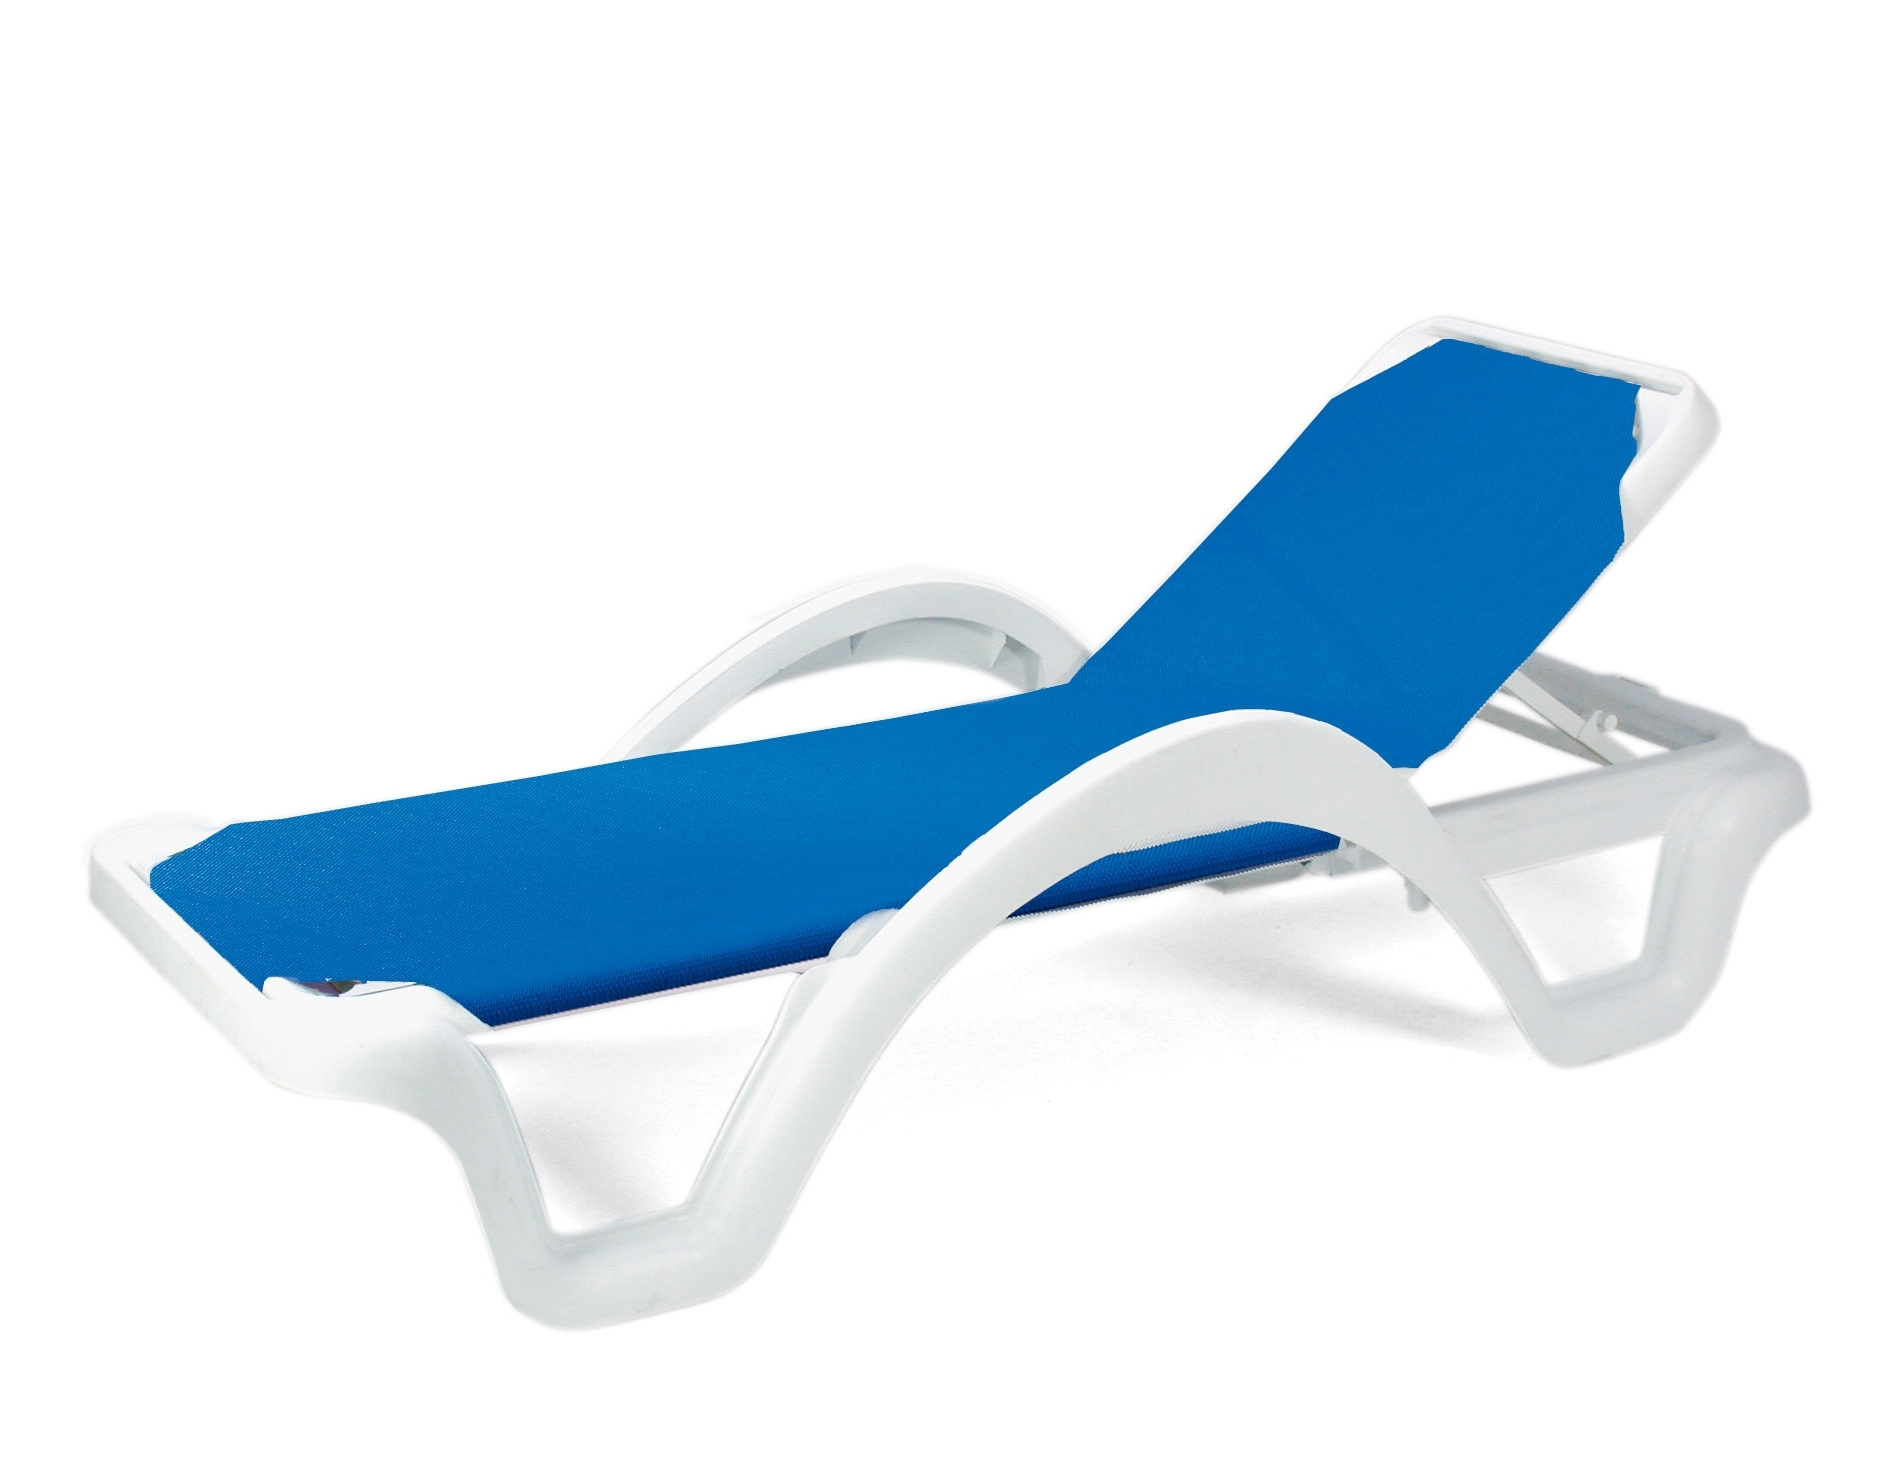 Well Liked Resin Chaise Lounges Intended For Chaise Lounge Chairs (View 15 of 15)